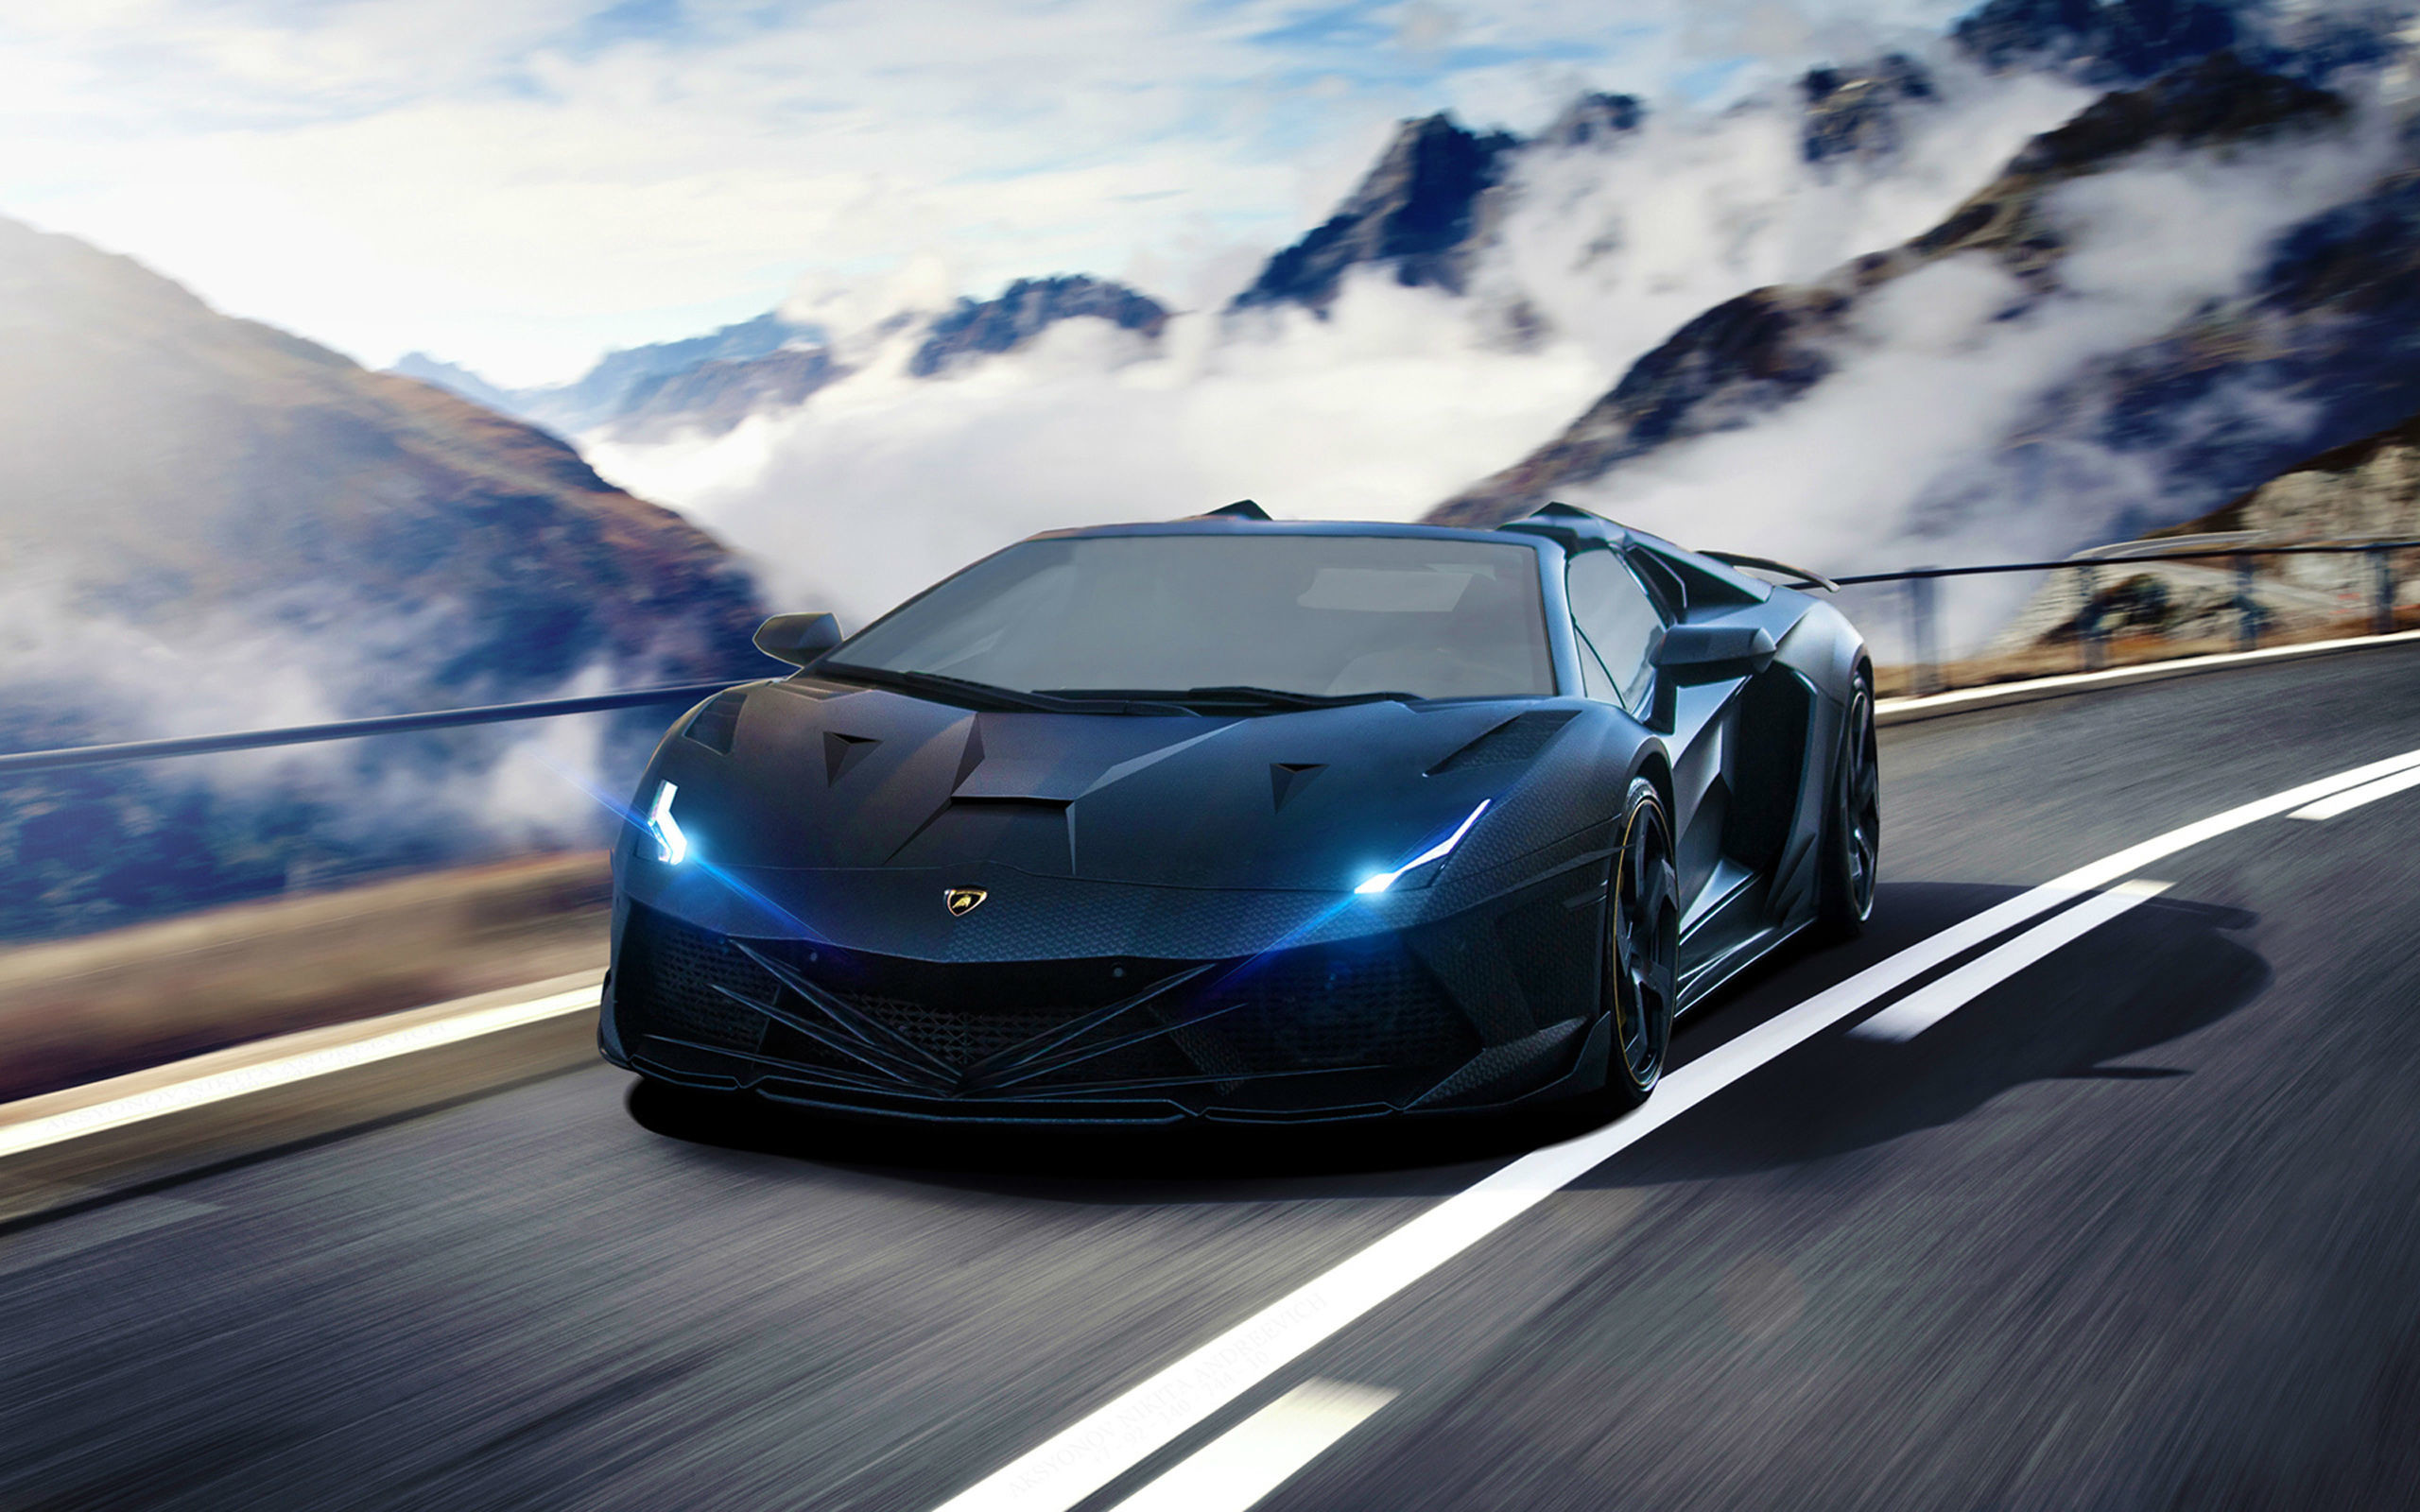 X Super Cars Images Hd With Super Cars Images Hd